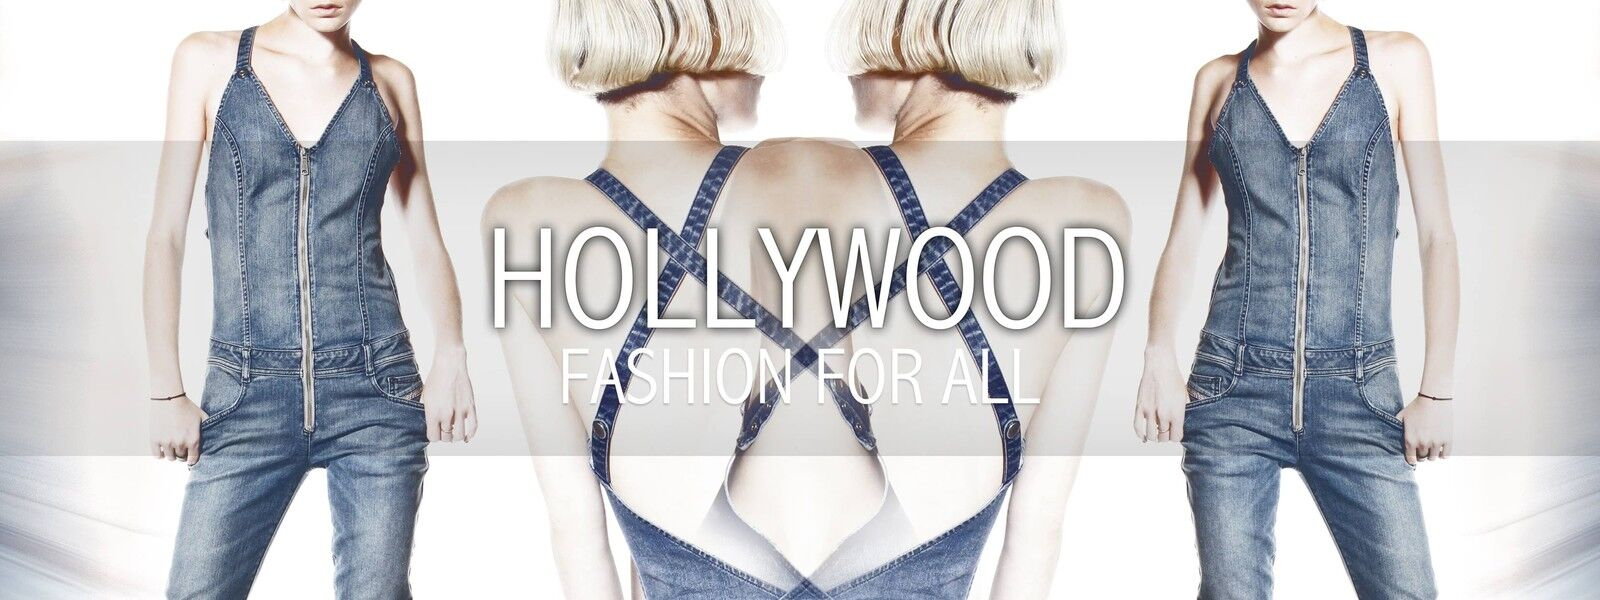 HOLLYWOOD FASHION 4 ALL